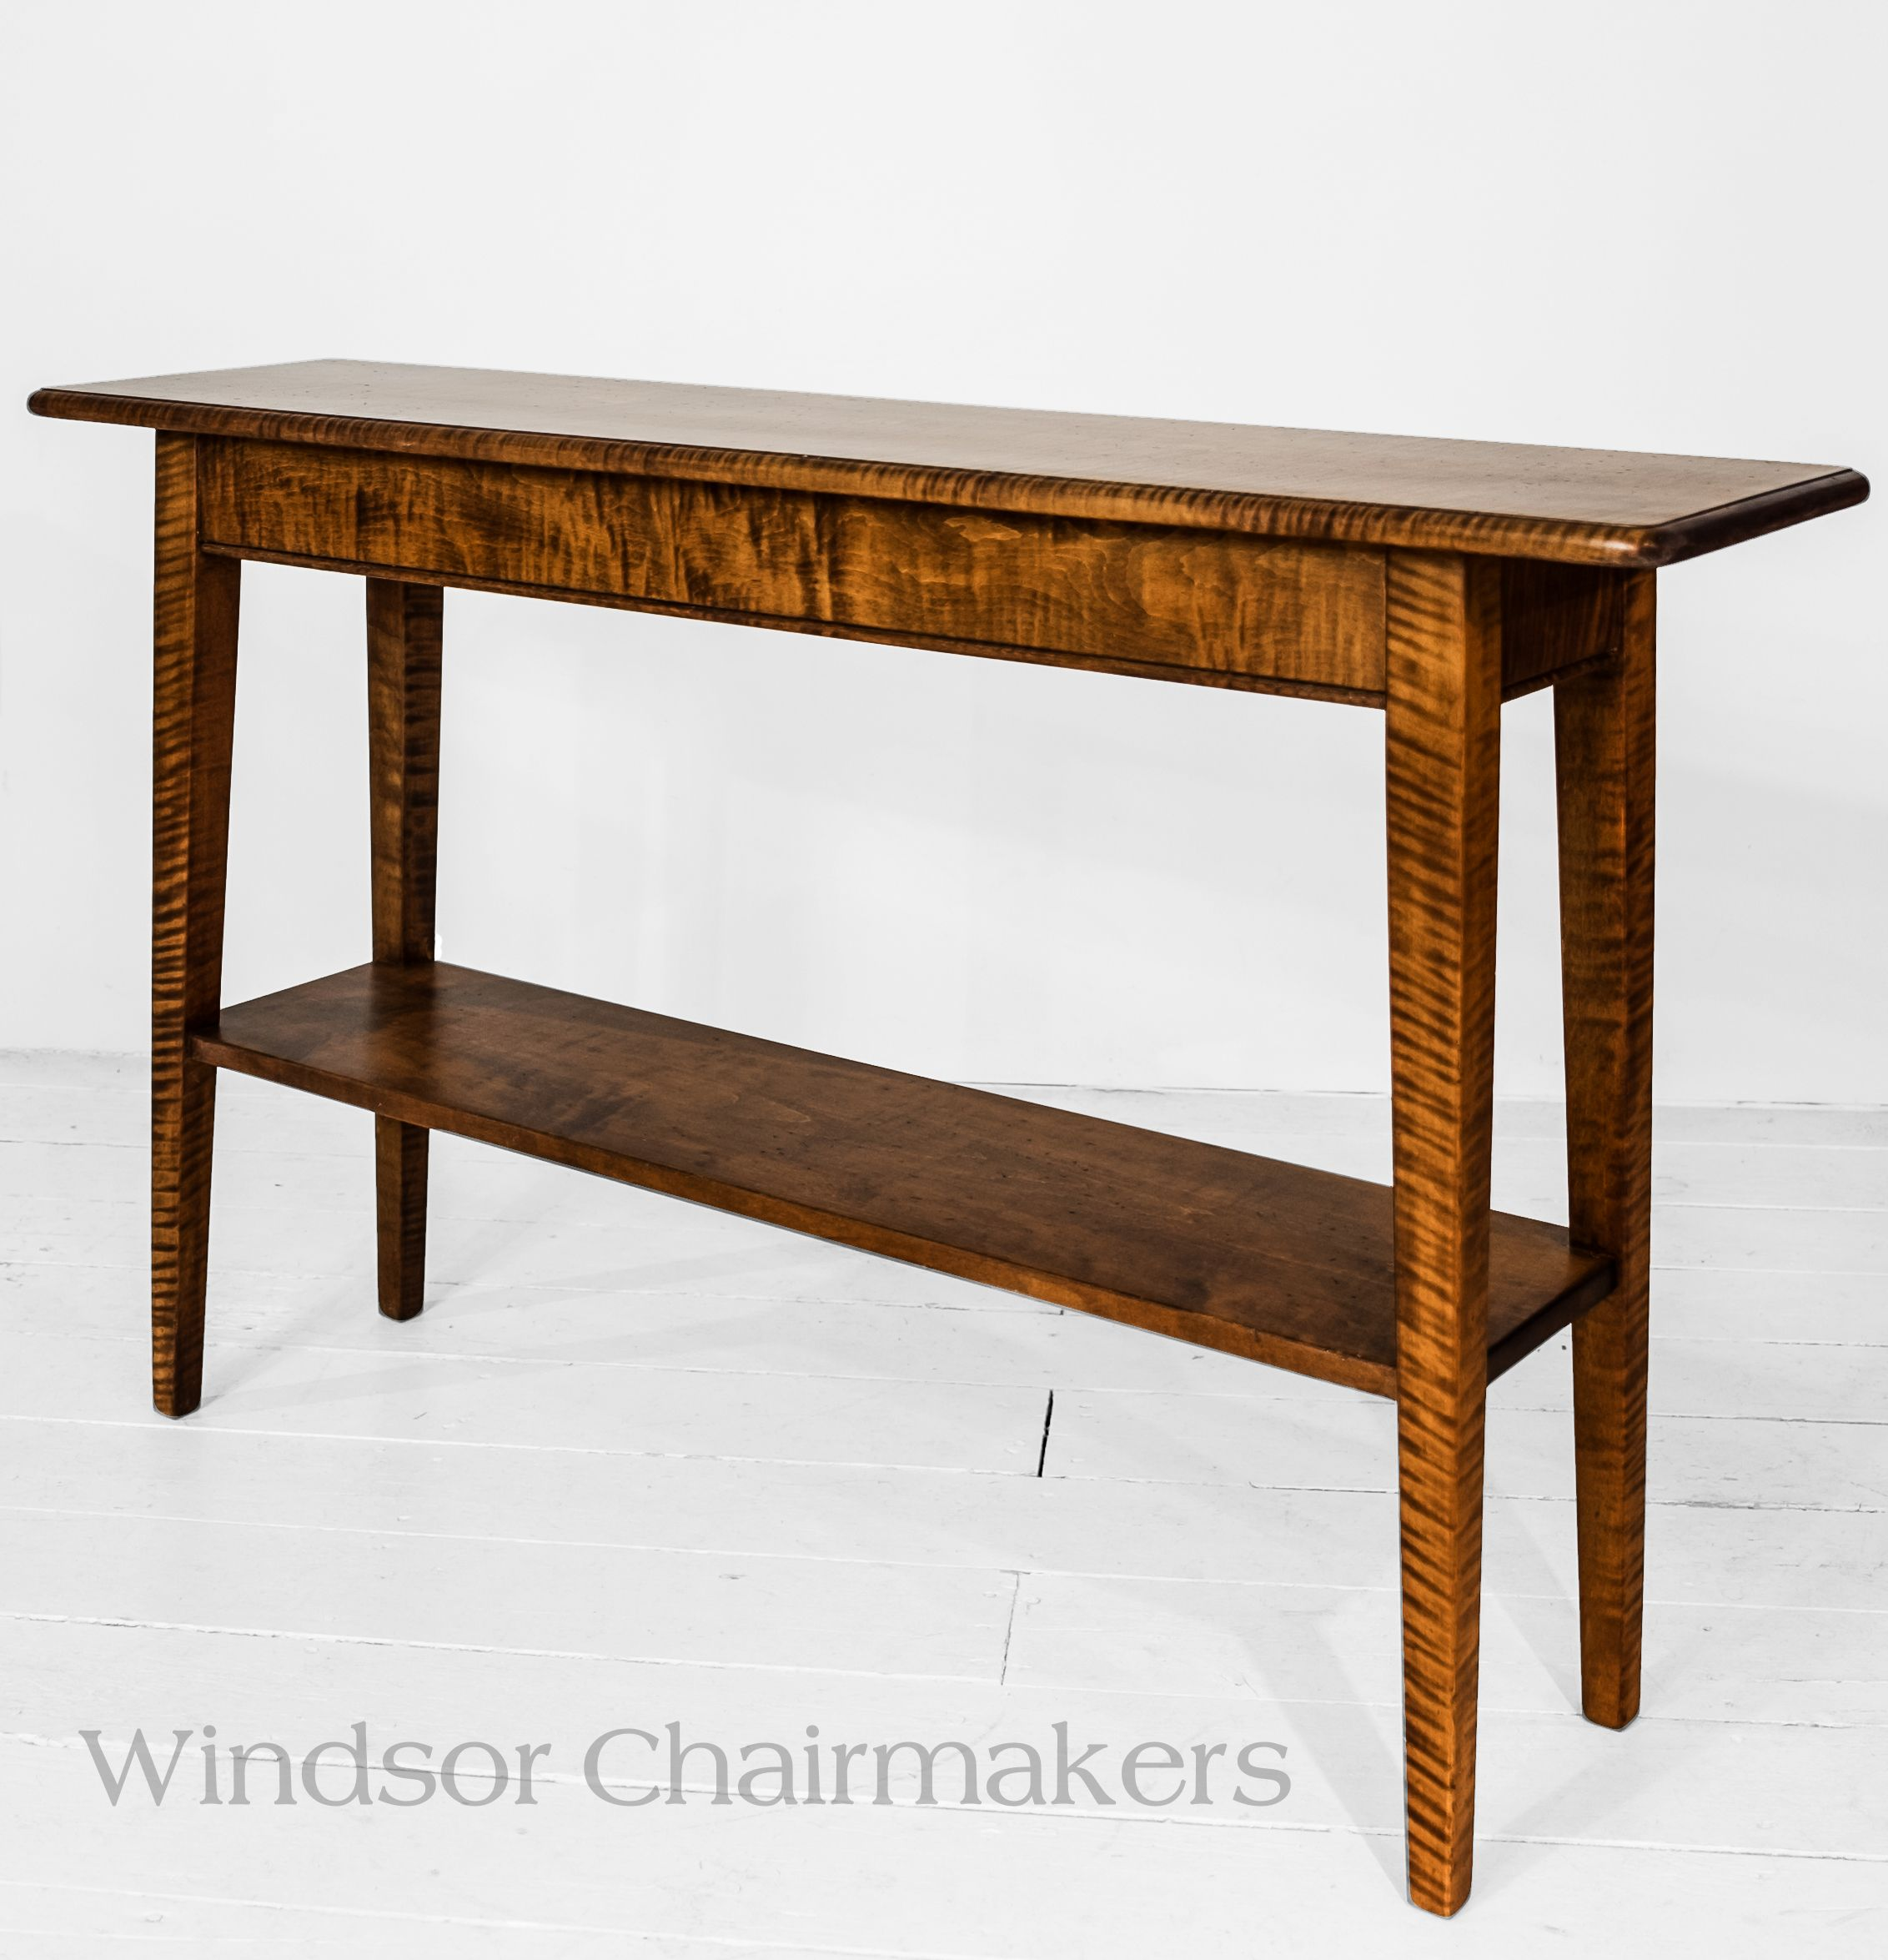 Console table 48 x 12 x 28 high wood choices tiger maple console table x x high wood choices tiger maple cherry or walnut geotapseo Choice Image